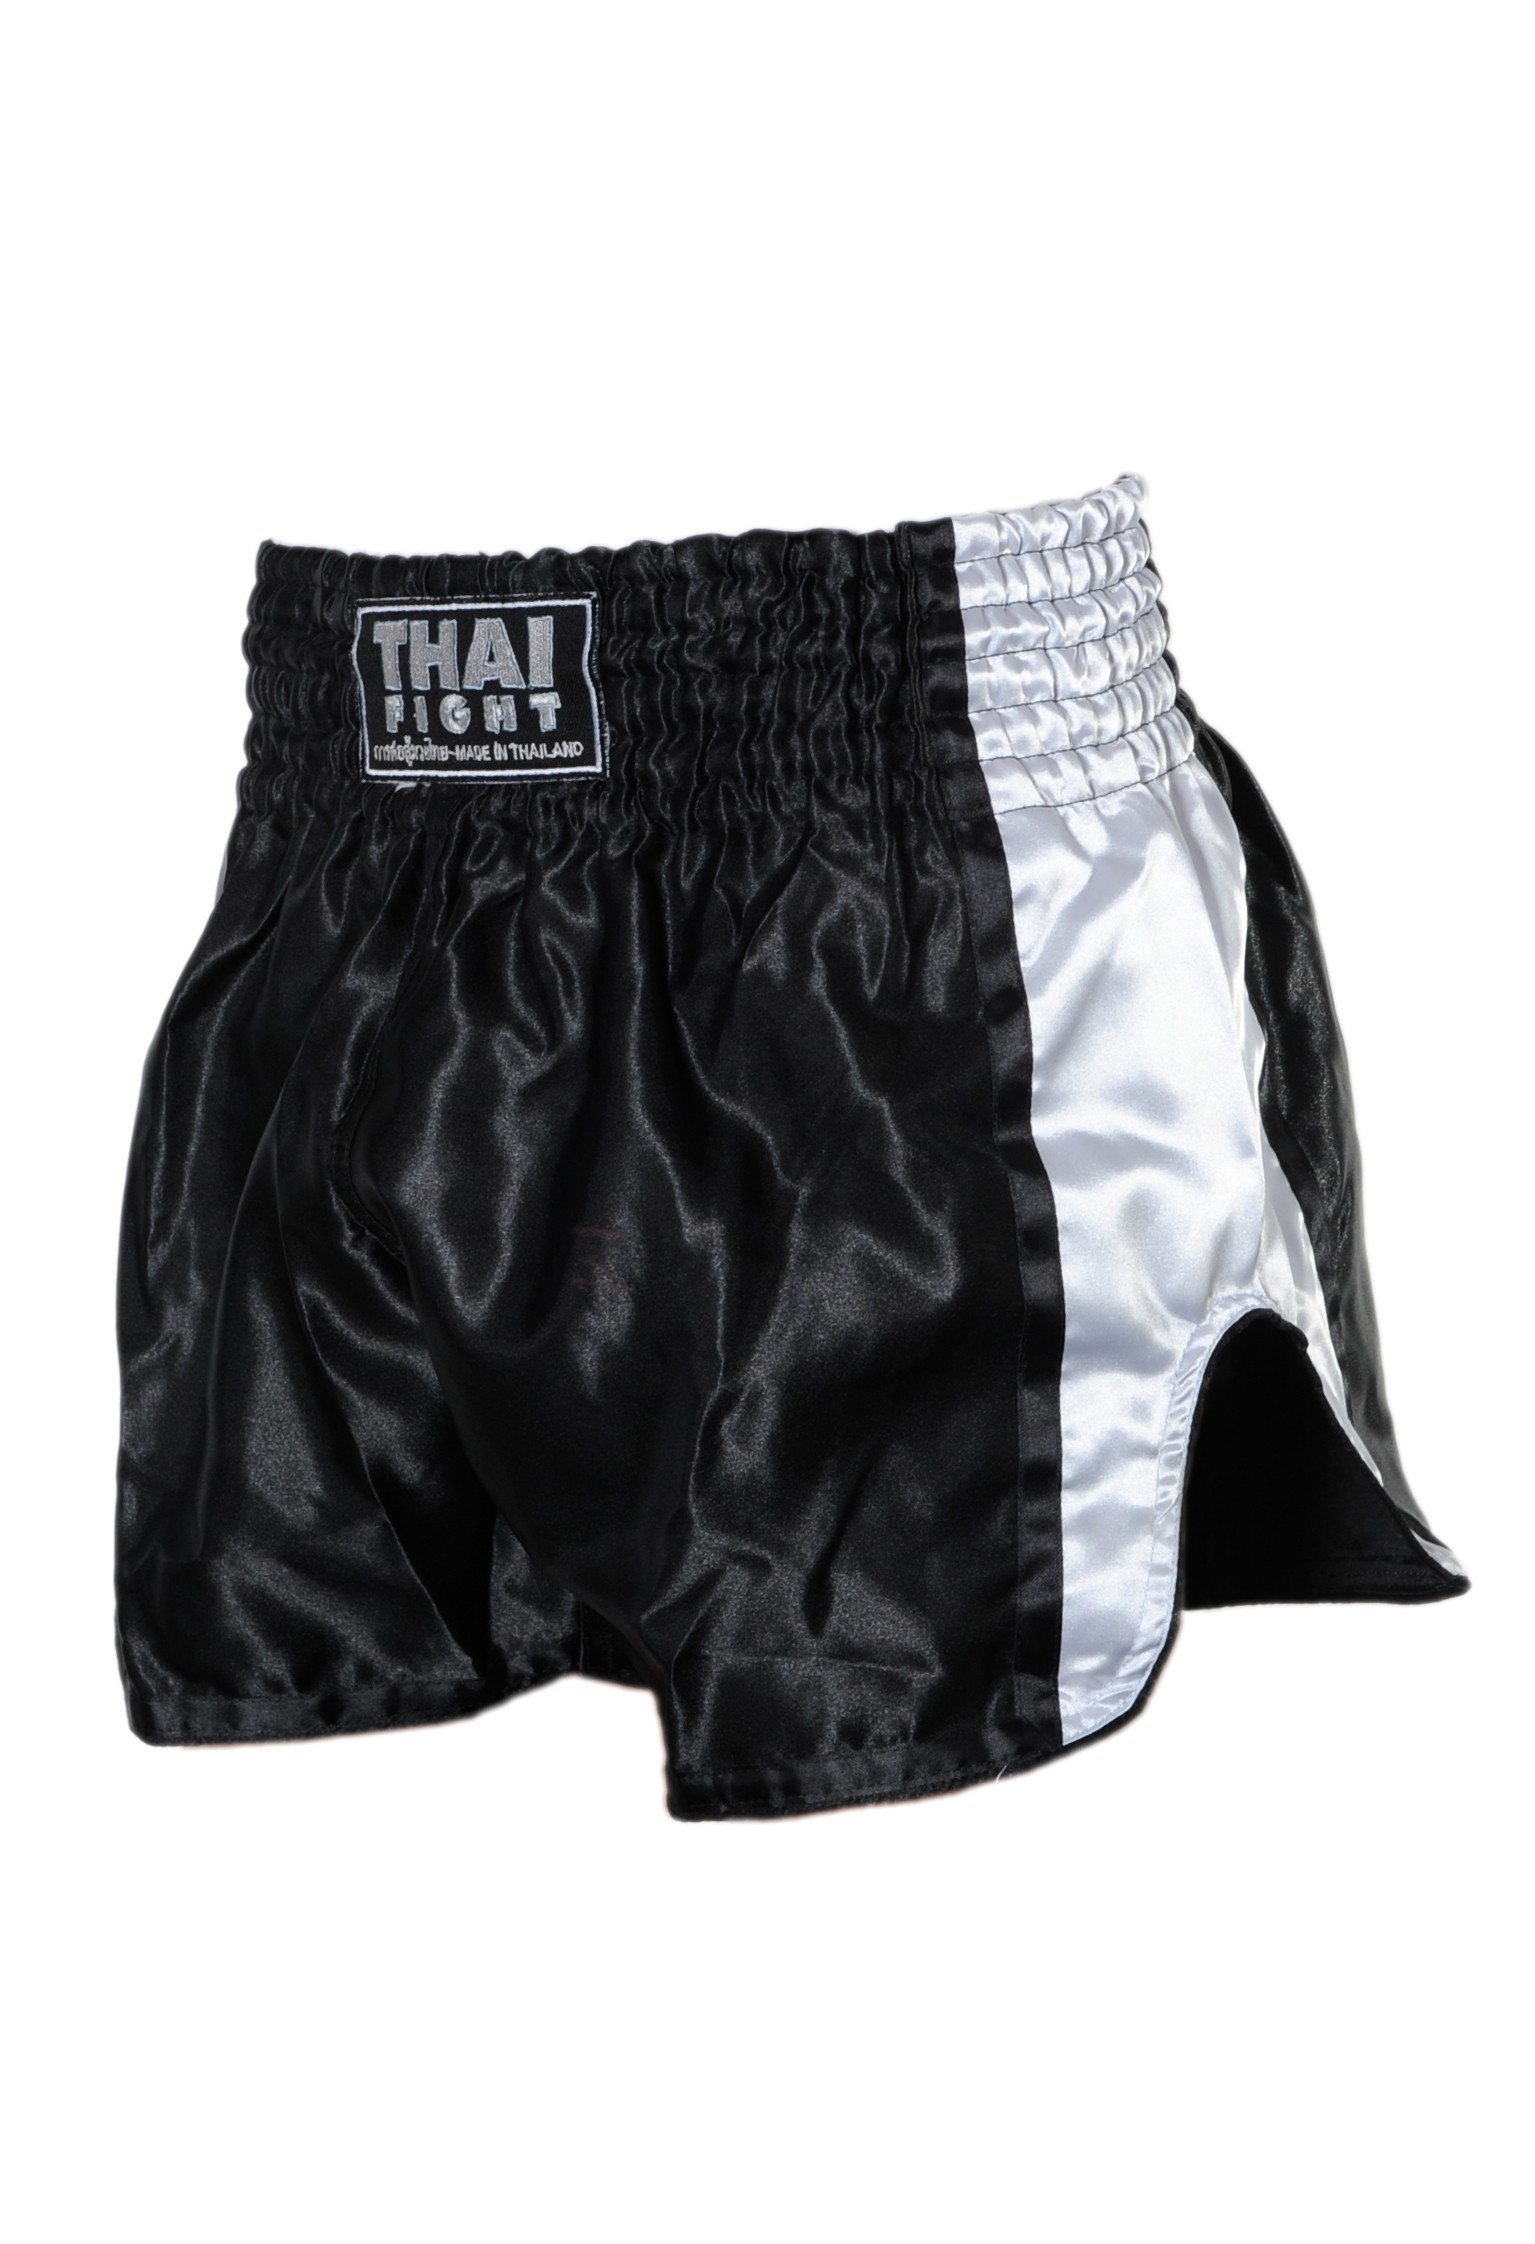 Short Boxe Thai ThaiFight Noir/Blanc